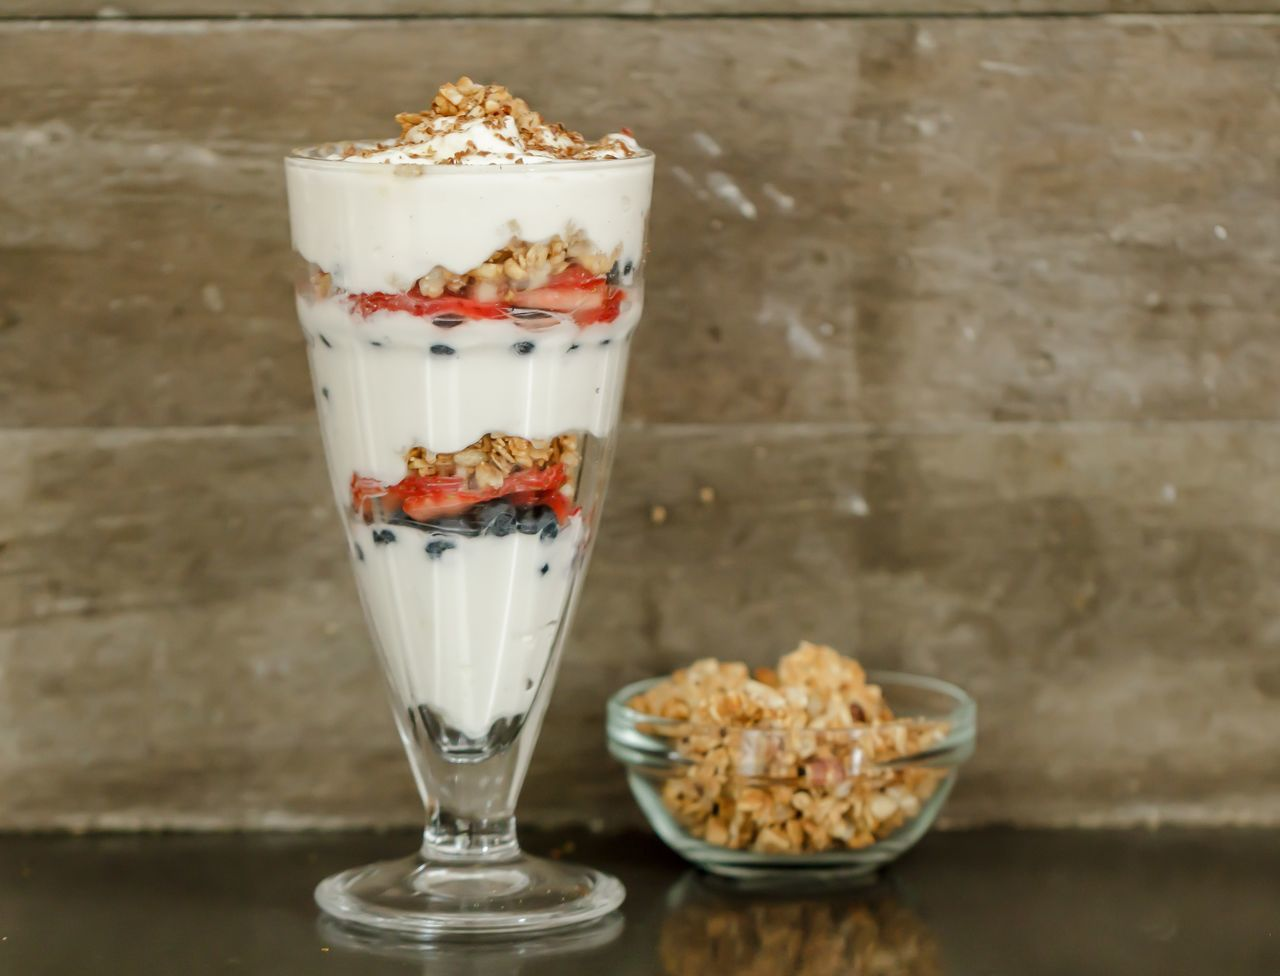 Banana Breakfast Chia Chia Seeds Close-up Cream Dairy Product Day Fit Food Fitness Food And Drink Freshness Fruit Granola Healthy Eating Healthy Recipe Indoors  No People Oatmeal Oats Protein Protein Recipe Ready-to-eat Recipes Yogurt